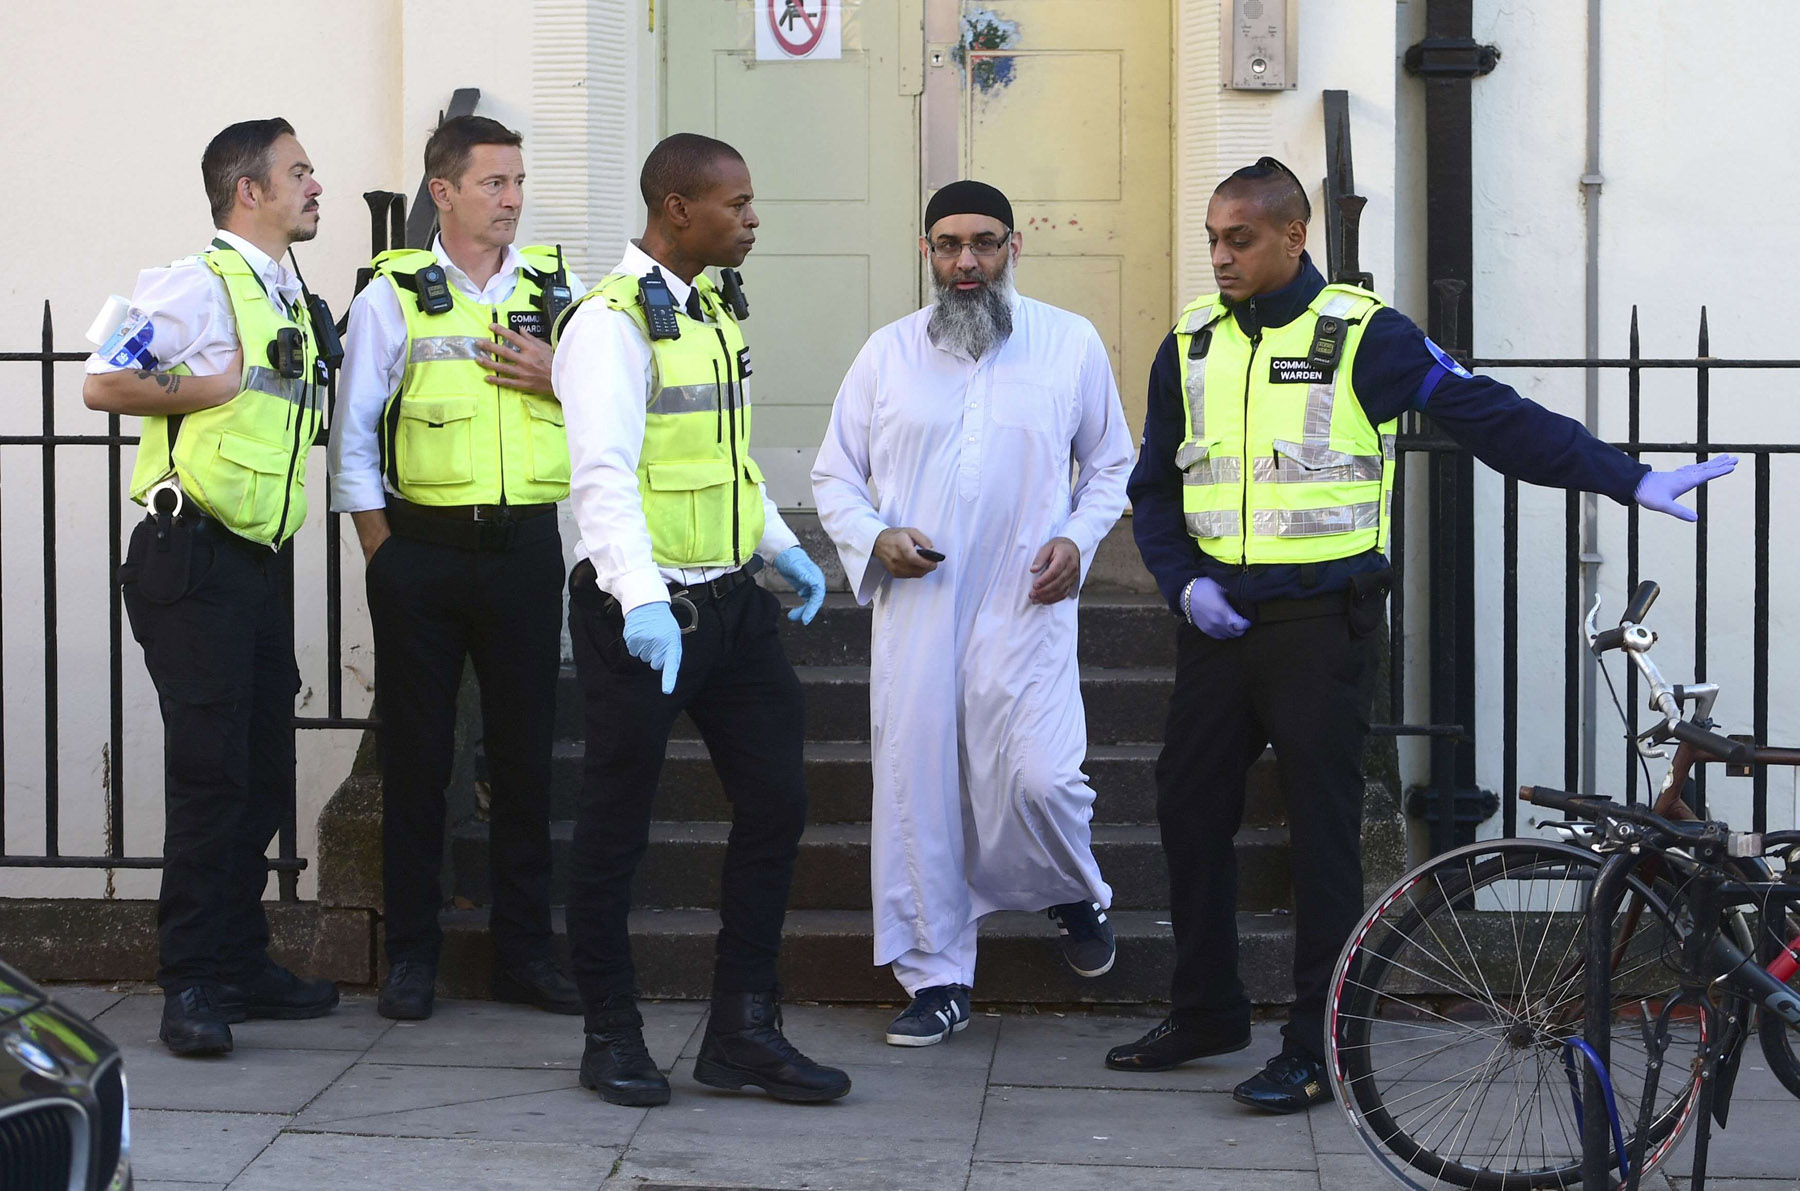 Anjem Choudary leaves a bail hostel in north London after his release from Belmarsh Prison, Friday October 19, 2018. (AP)